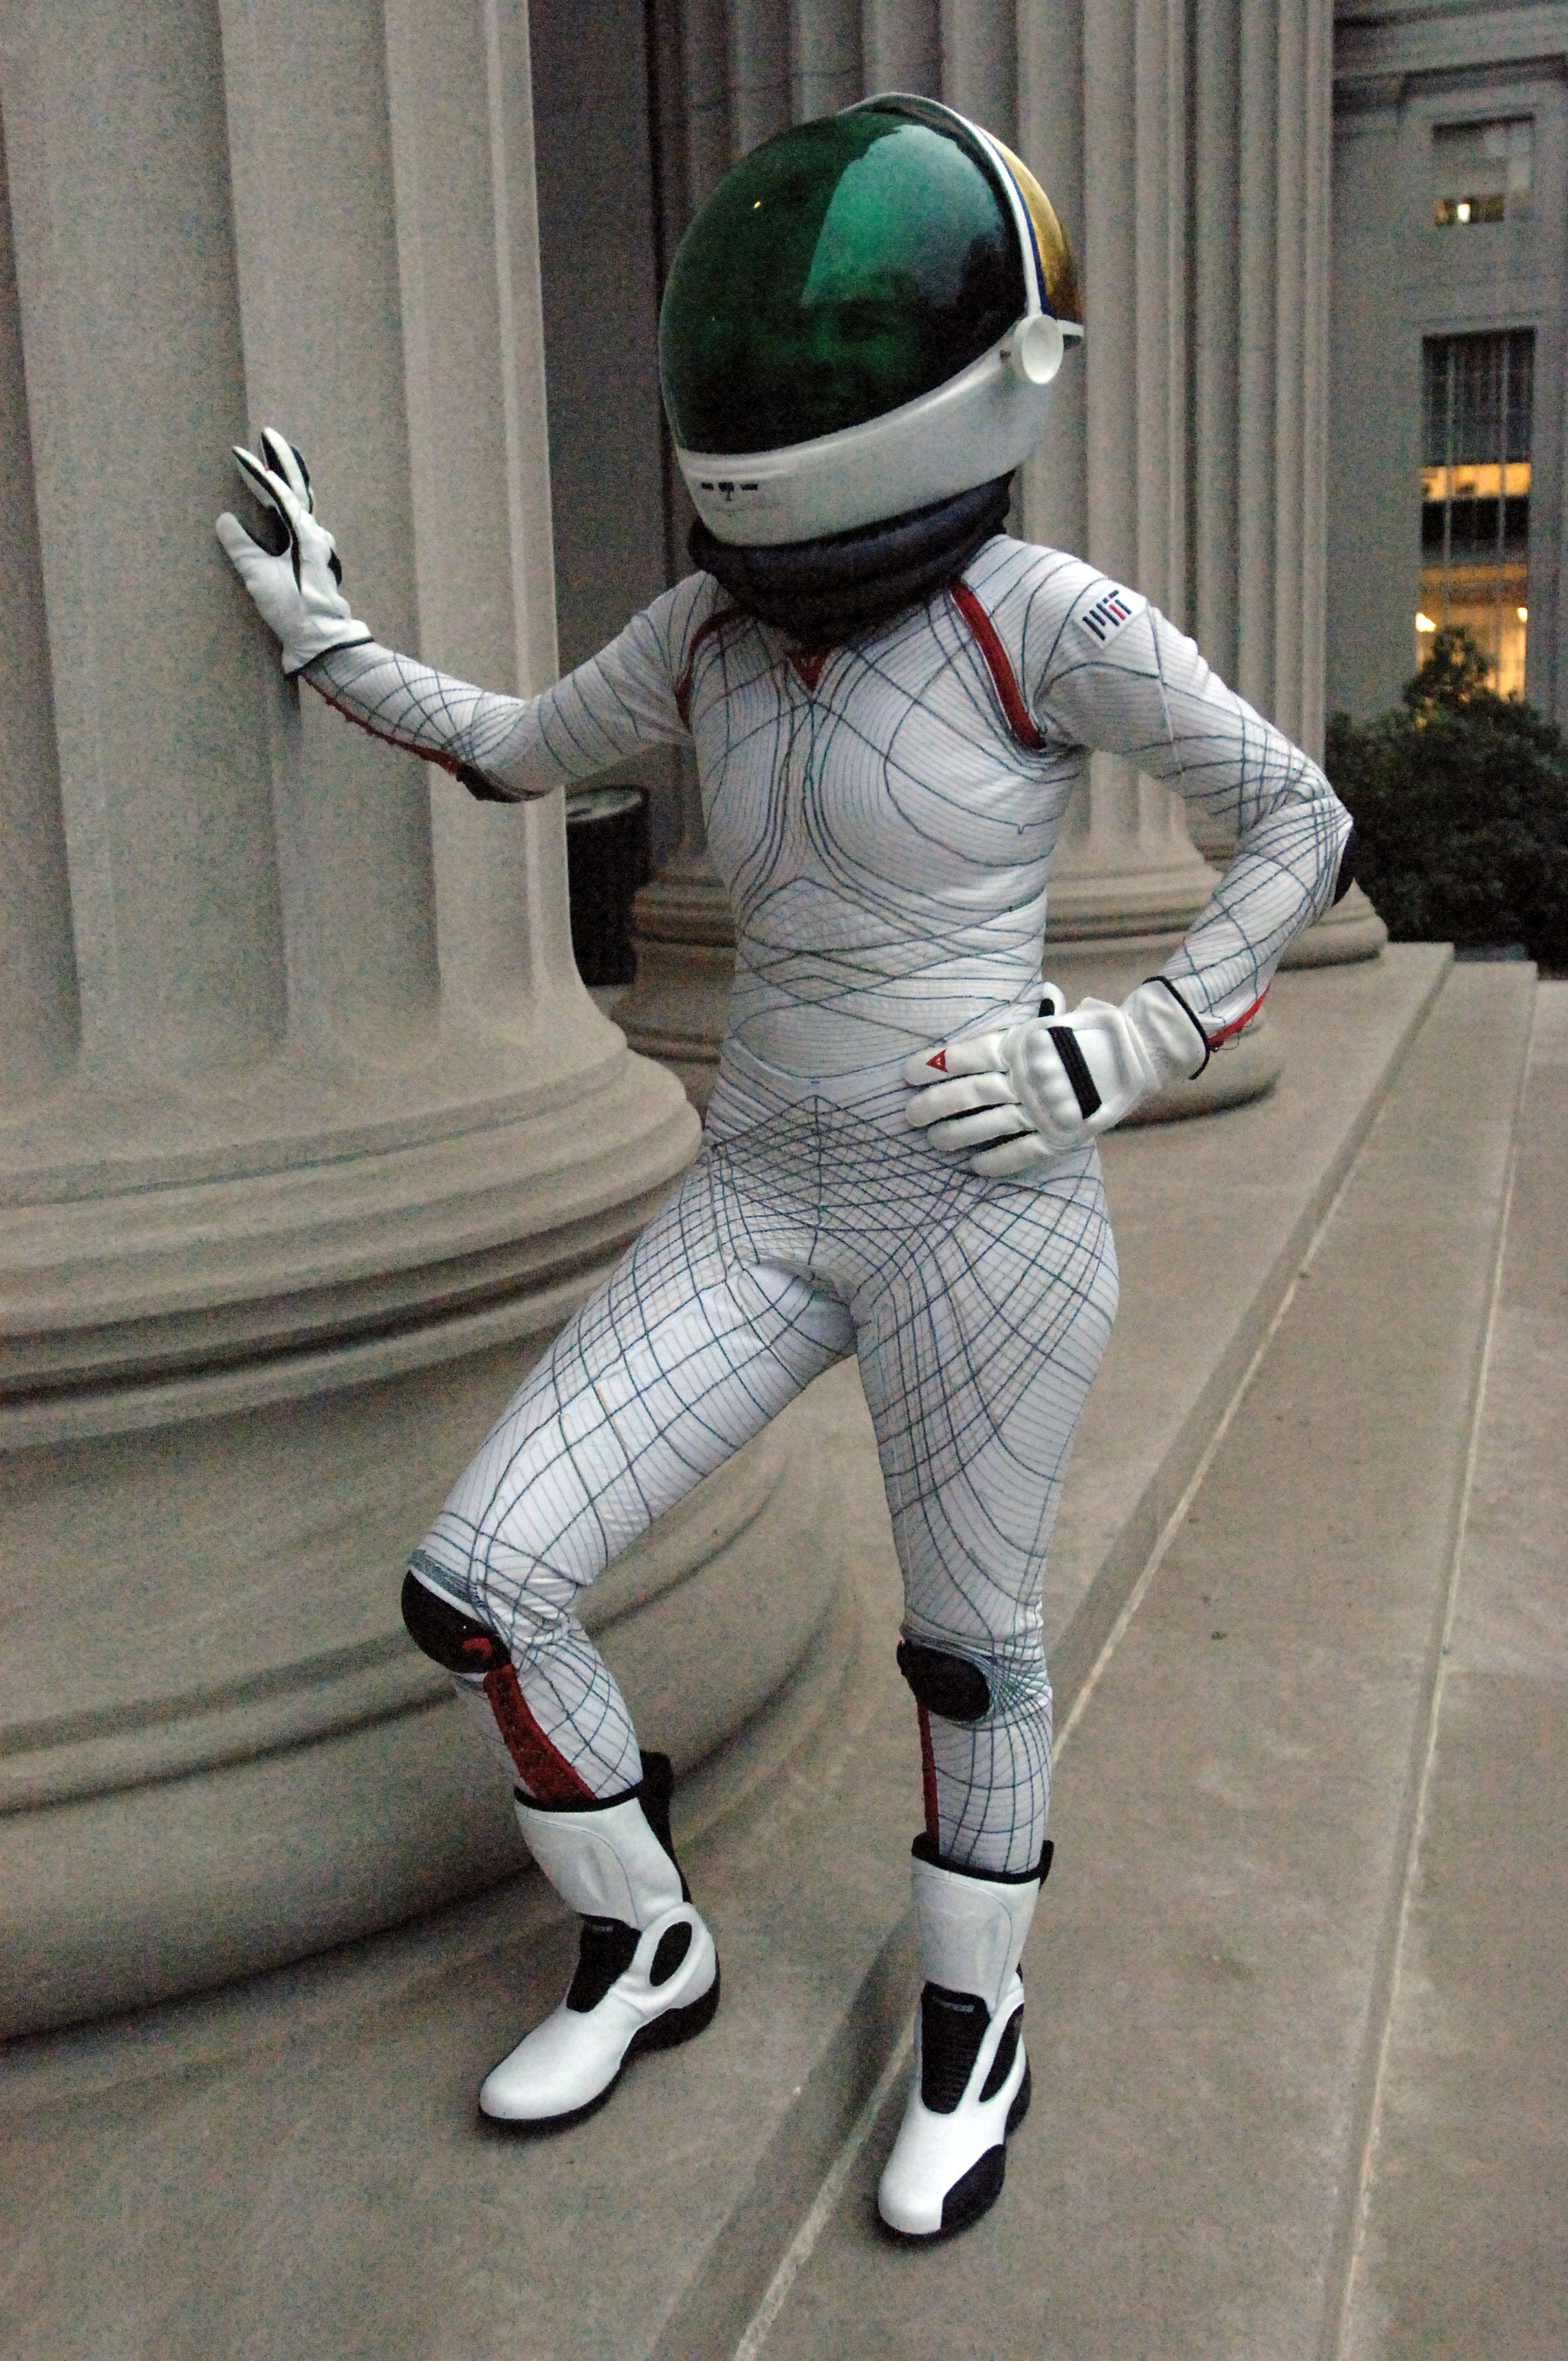 Space suits for mars